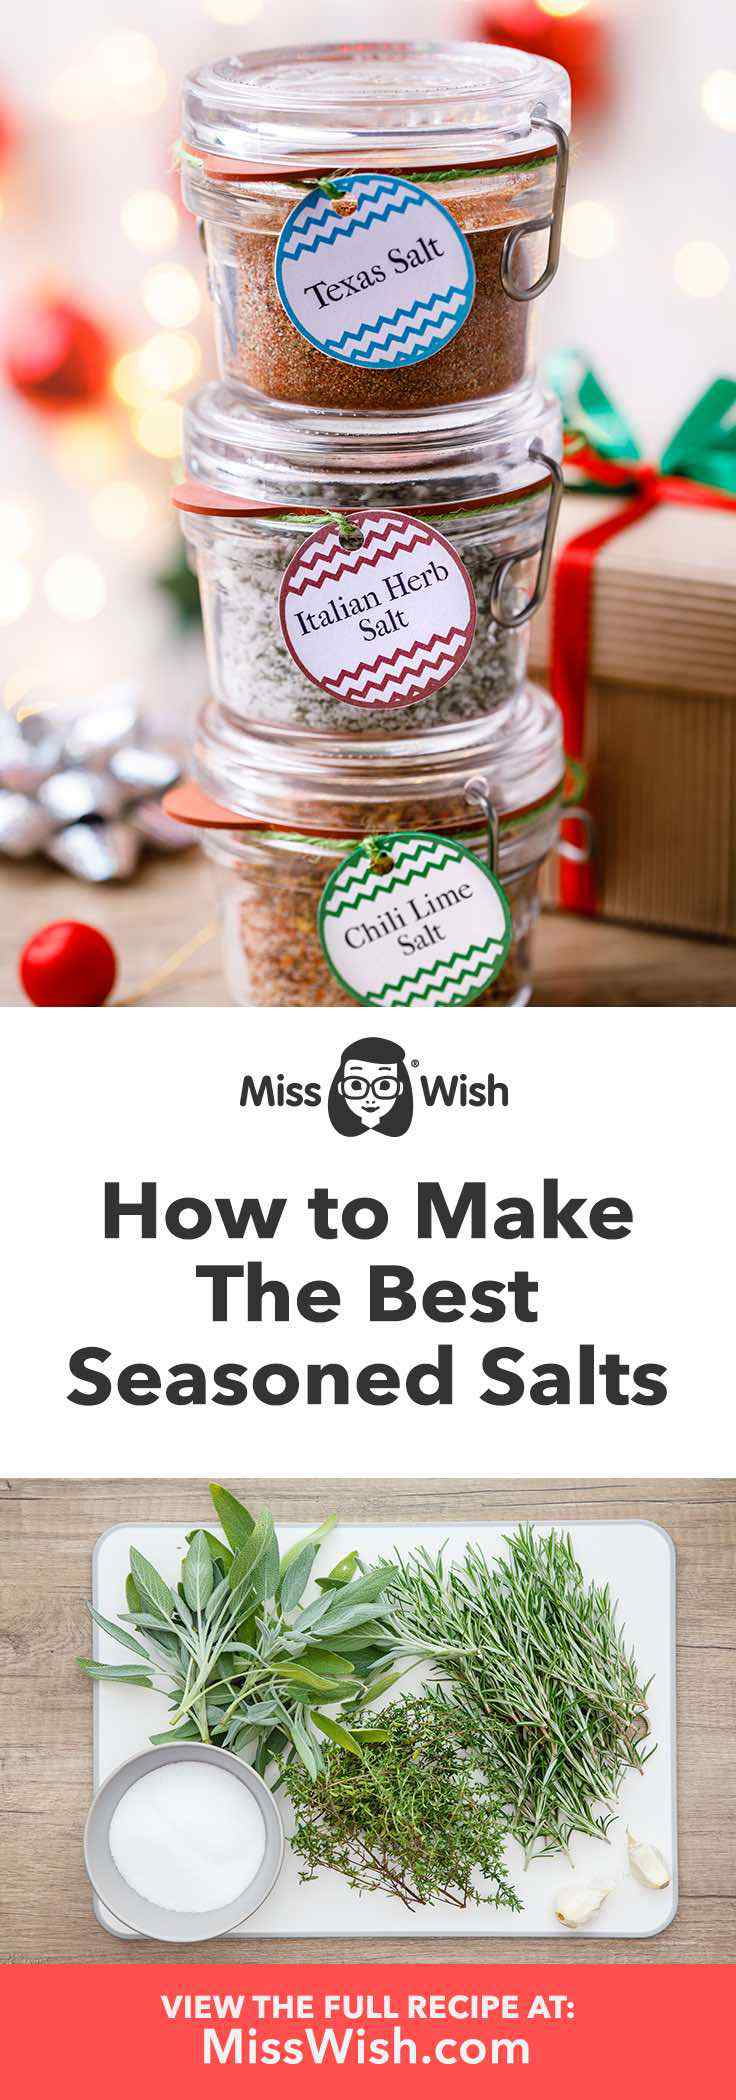 3 Best Homemade Seasoned Salts- chili lime, italian herb and texas salt.